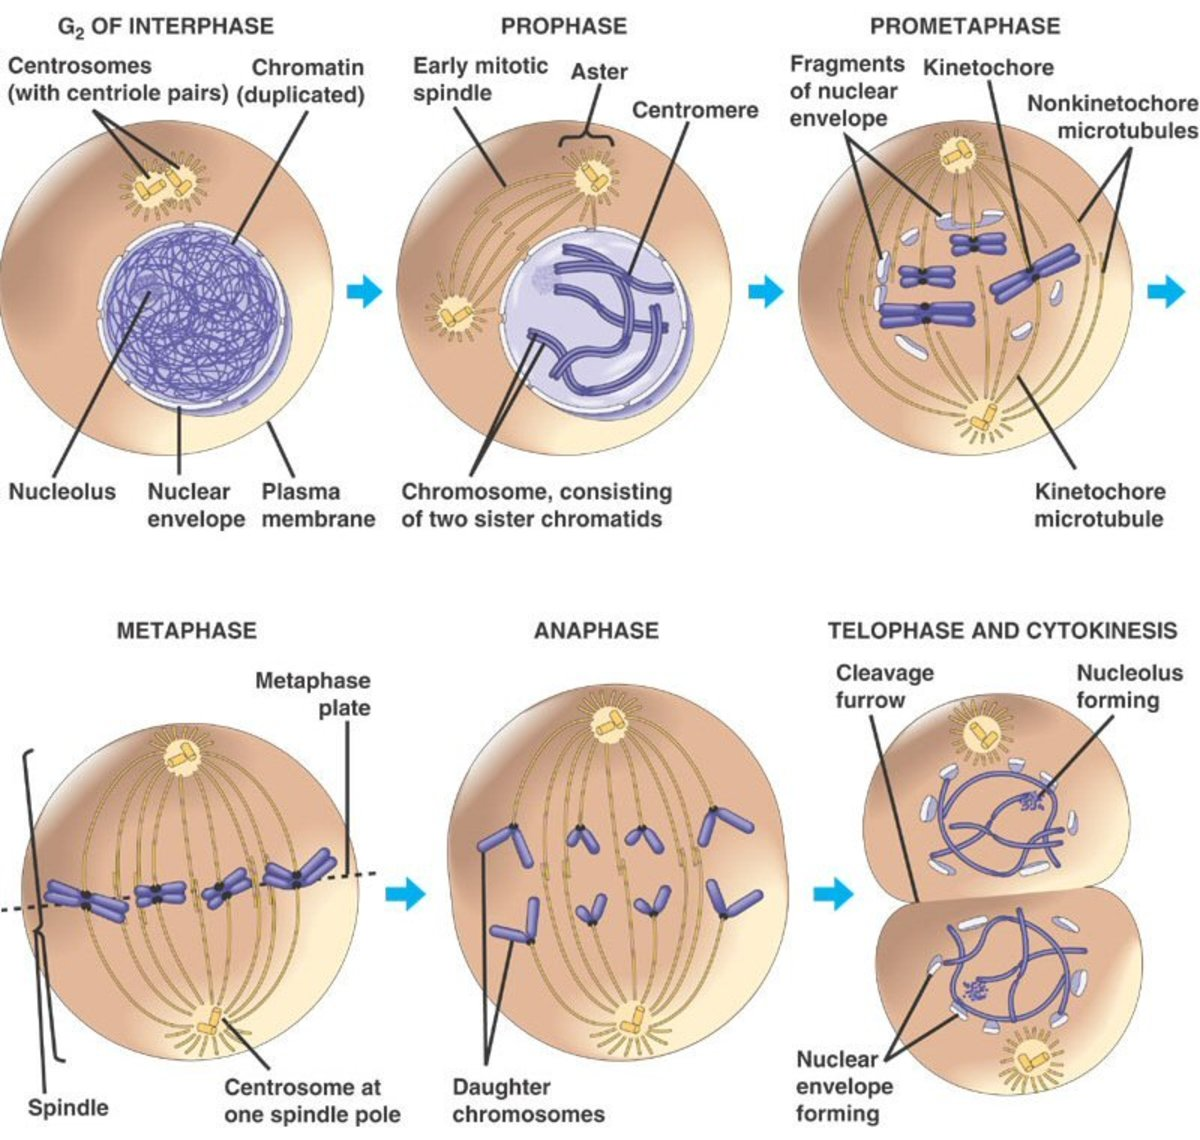 Stages of the Cell Cycle - Mitosis (Metaphase, Anaphase and